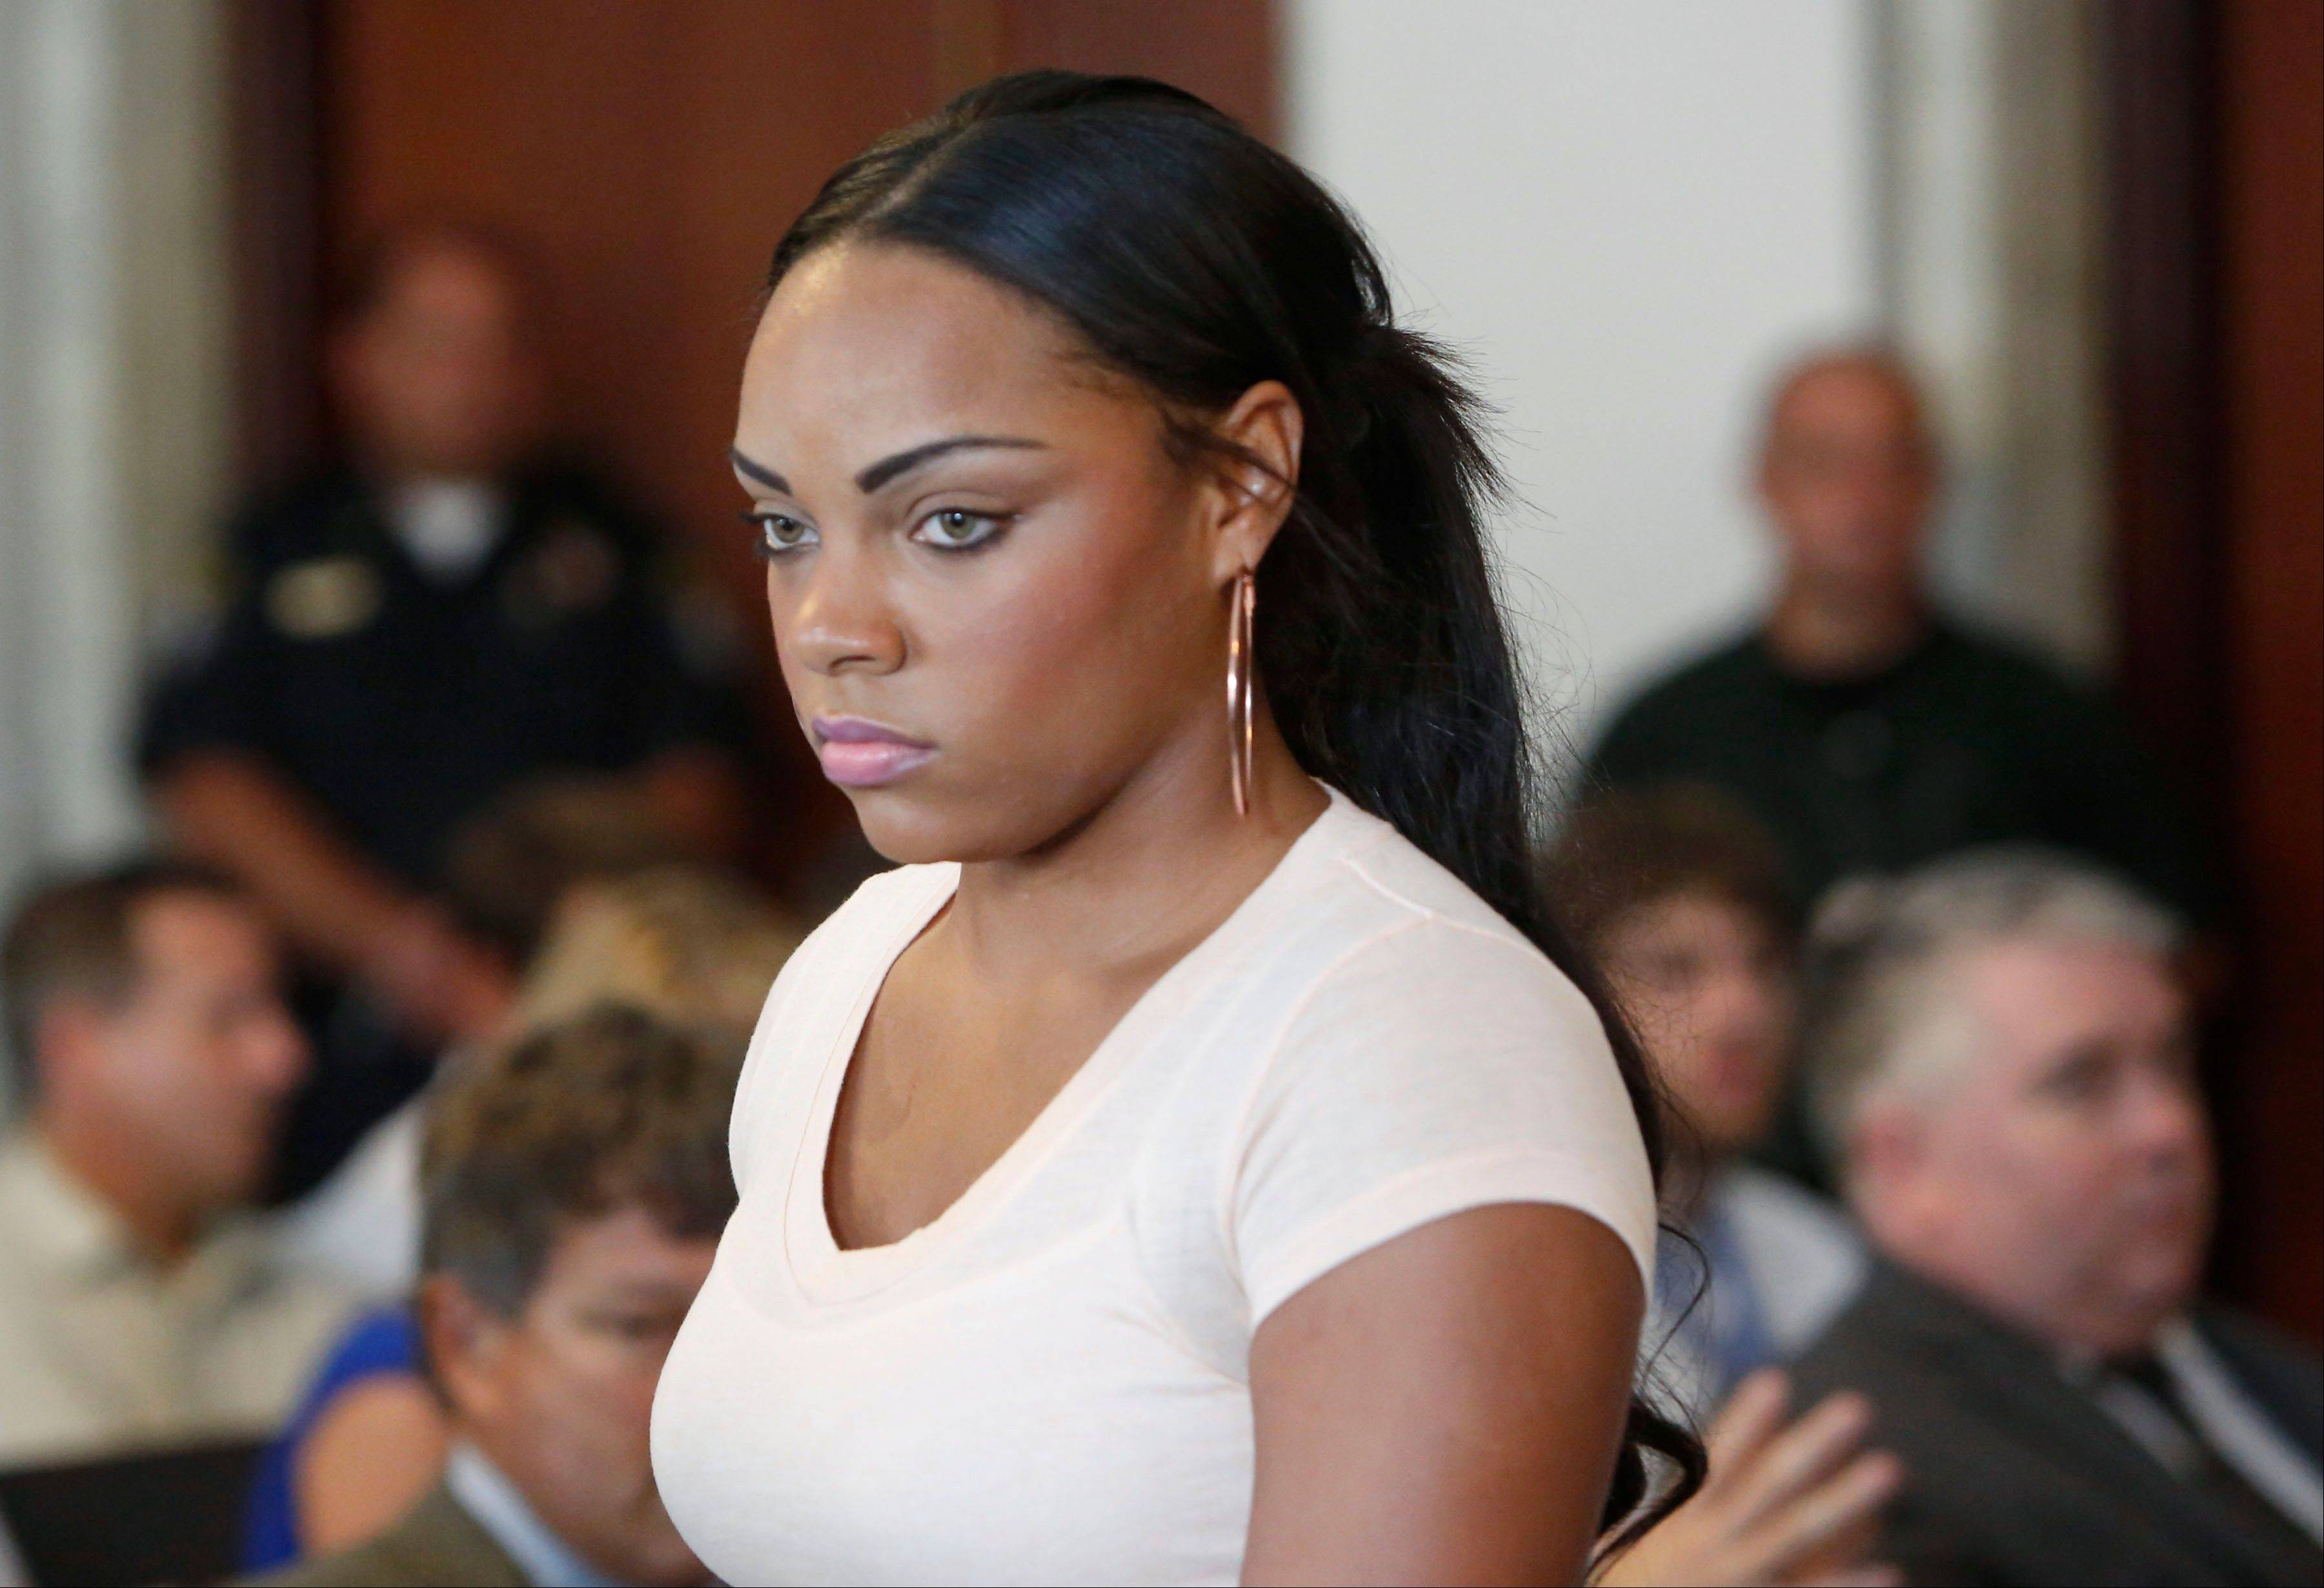 FILE - In this July 24, 2013, file photo, Shayanna Jenkins, fiancee of former New England Patriots NFL football player Aaron Hernandez, arrives at hearing for Hernandez at Attleboro District Courtroom in Attleboro, Mass. A Massachusetts prosecutor said Friday, Sept. 27, 2013, that a grand jury indicted Jenkins on a single count of perjury in relation to the investigation into the June 17 killing of Odin Lloyd. Lloyd had been dating Jenkins' sister. Hernandez has pleaded not guilty to first-degree murder in Lloyd's death and is being held without bail. (AP Photo/Bizuayehu Tesfaye, File)